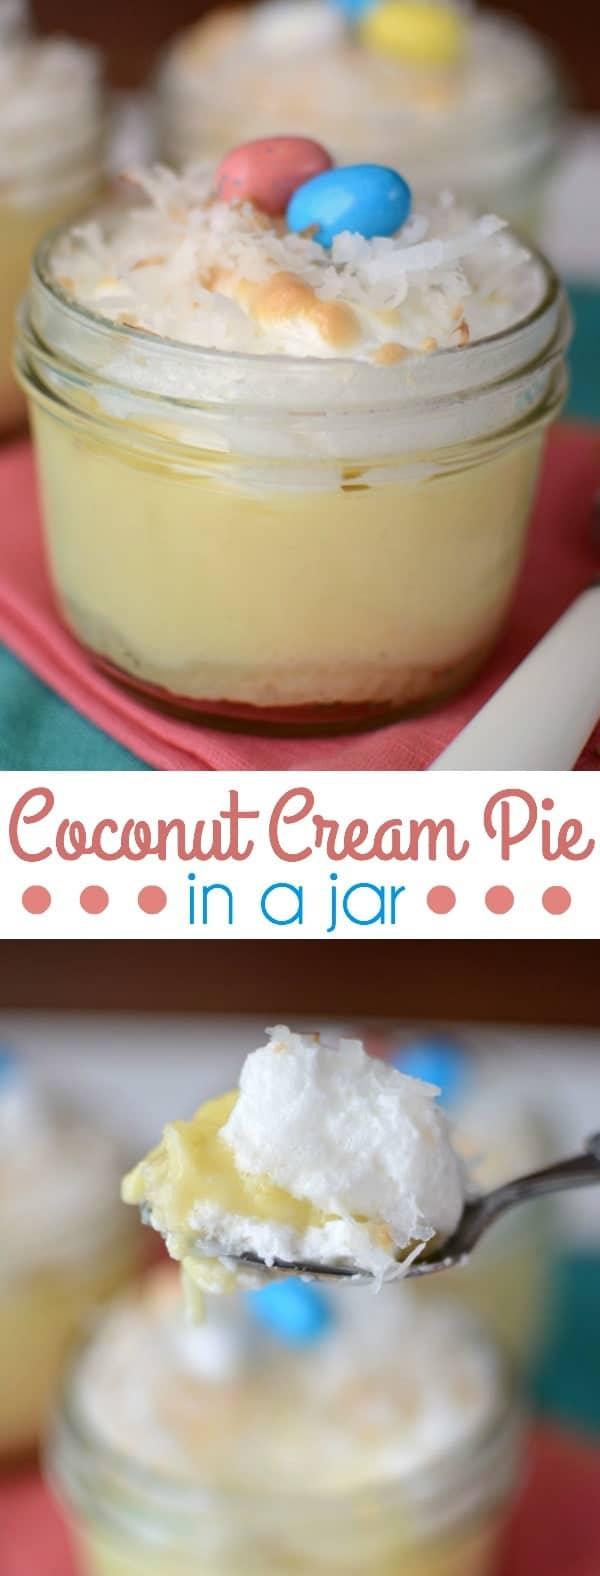 Coconut Cream Pies in jars